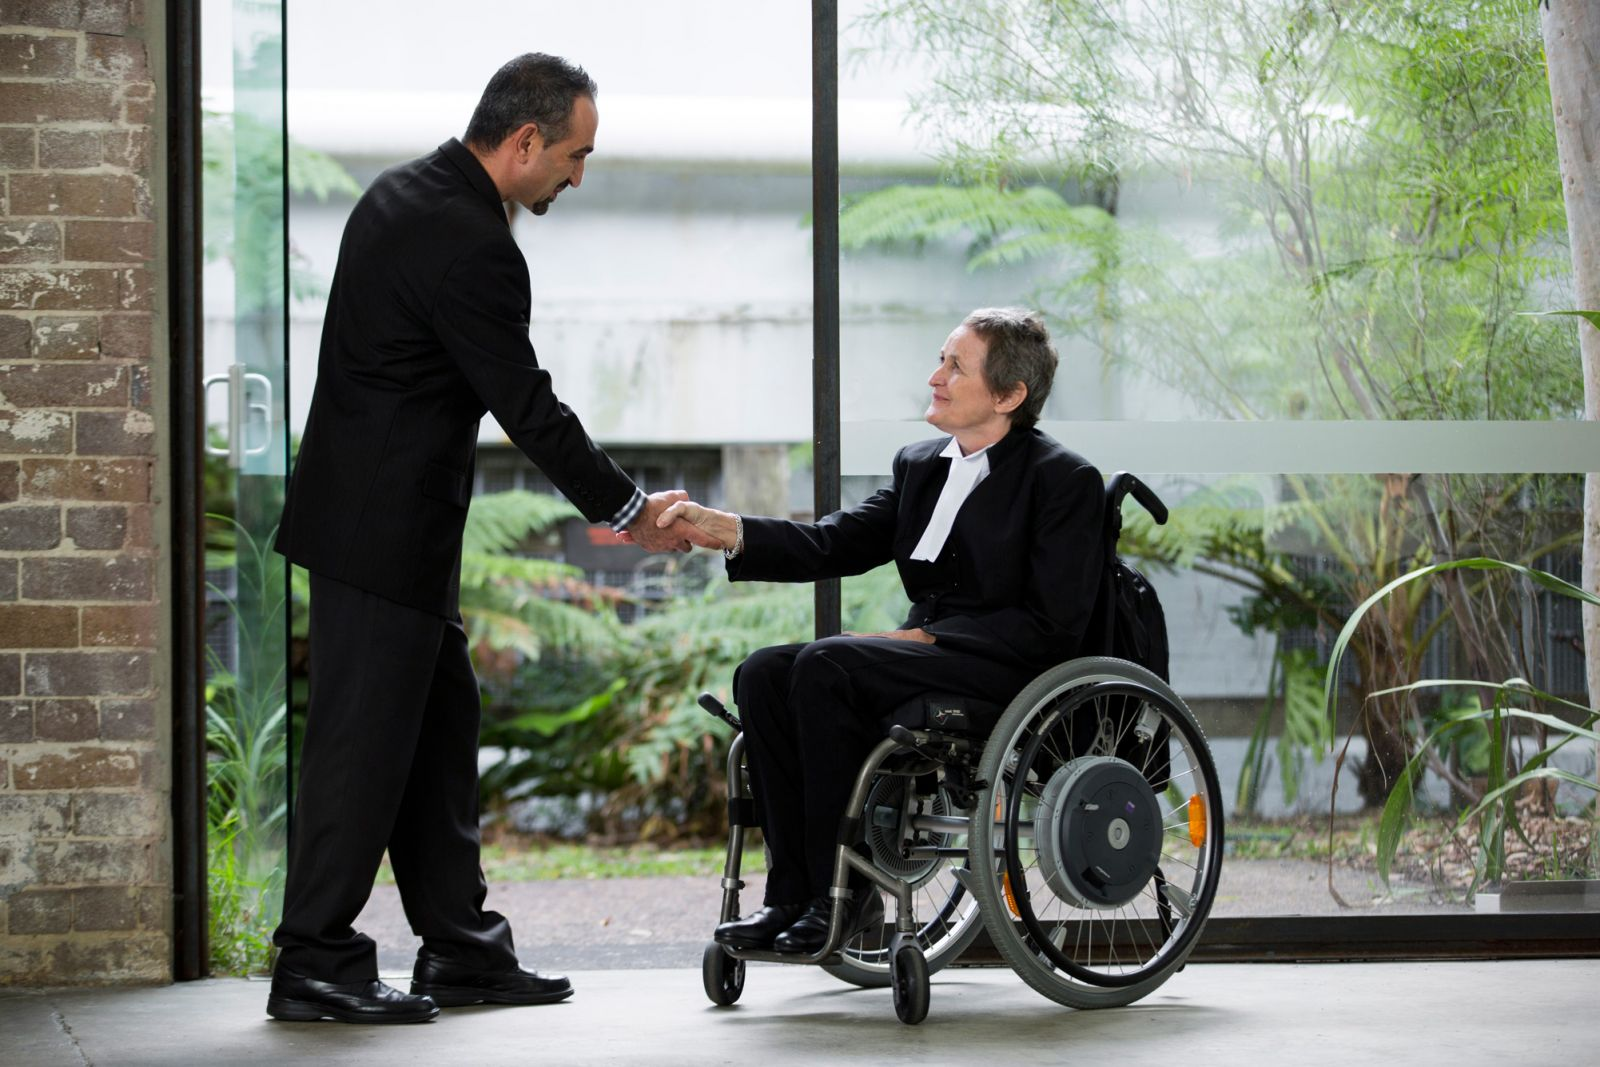 Person in a wheelchair shaking hands with someone